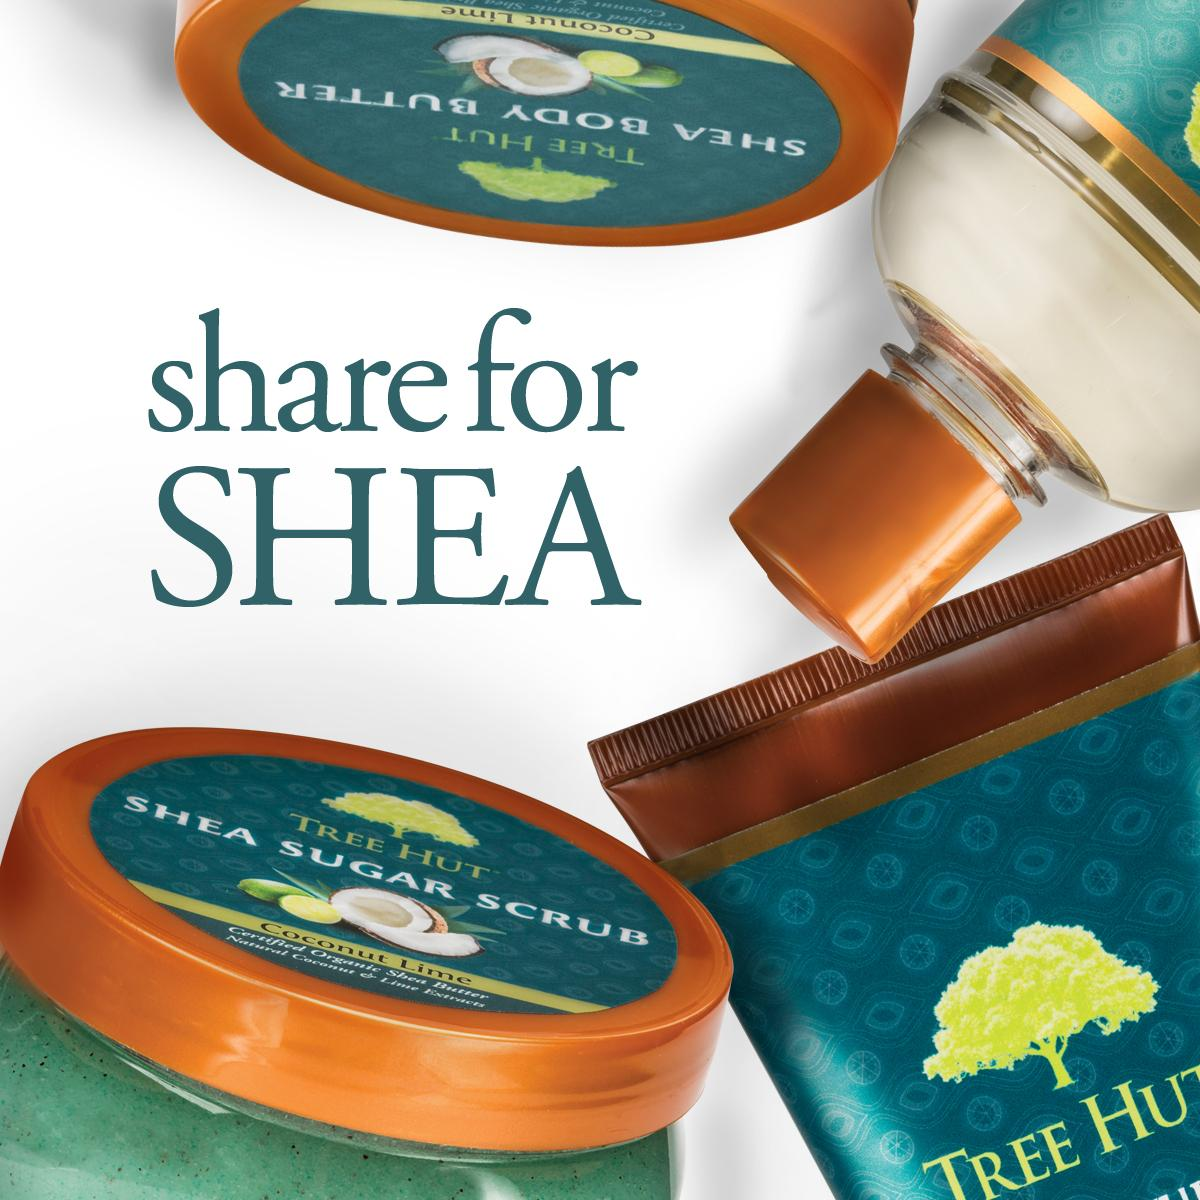 Retweet this image for a chance to win Coconut Lime Shea Body Butter! A winner will be announced tomorrow. http://t.co/Czd9b4P3bb